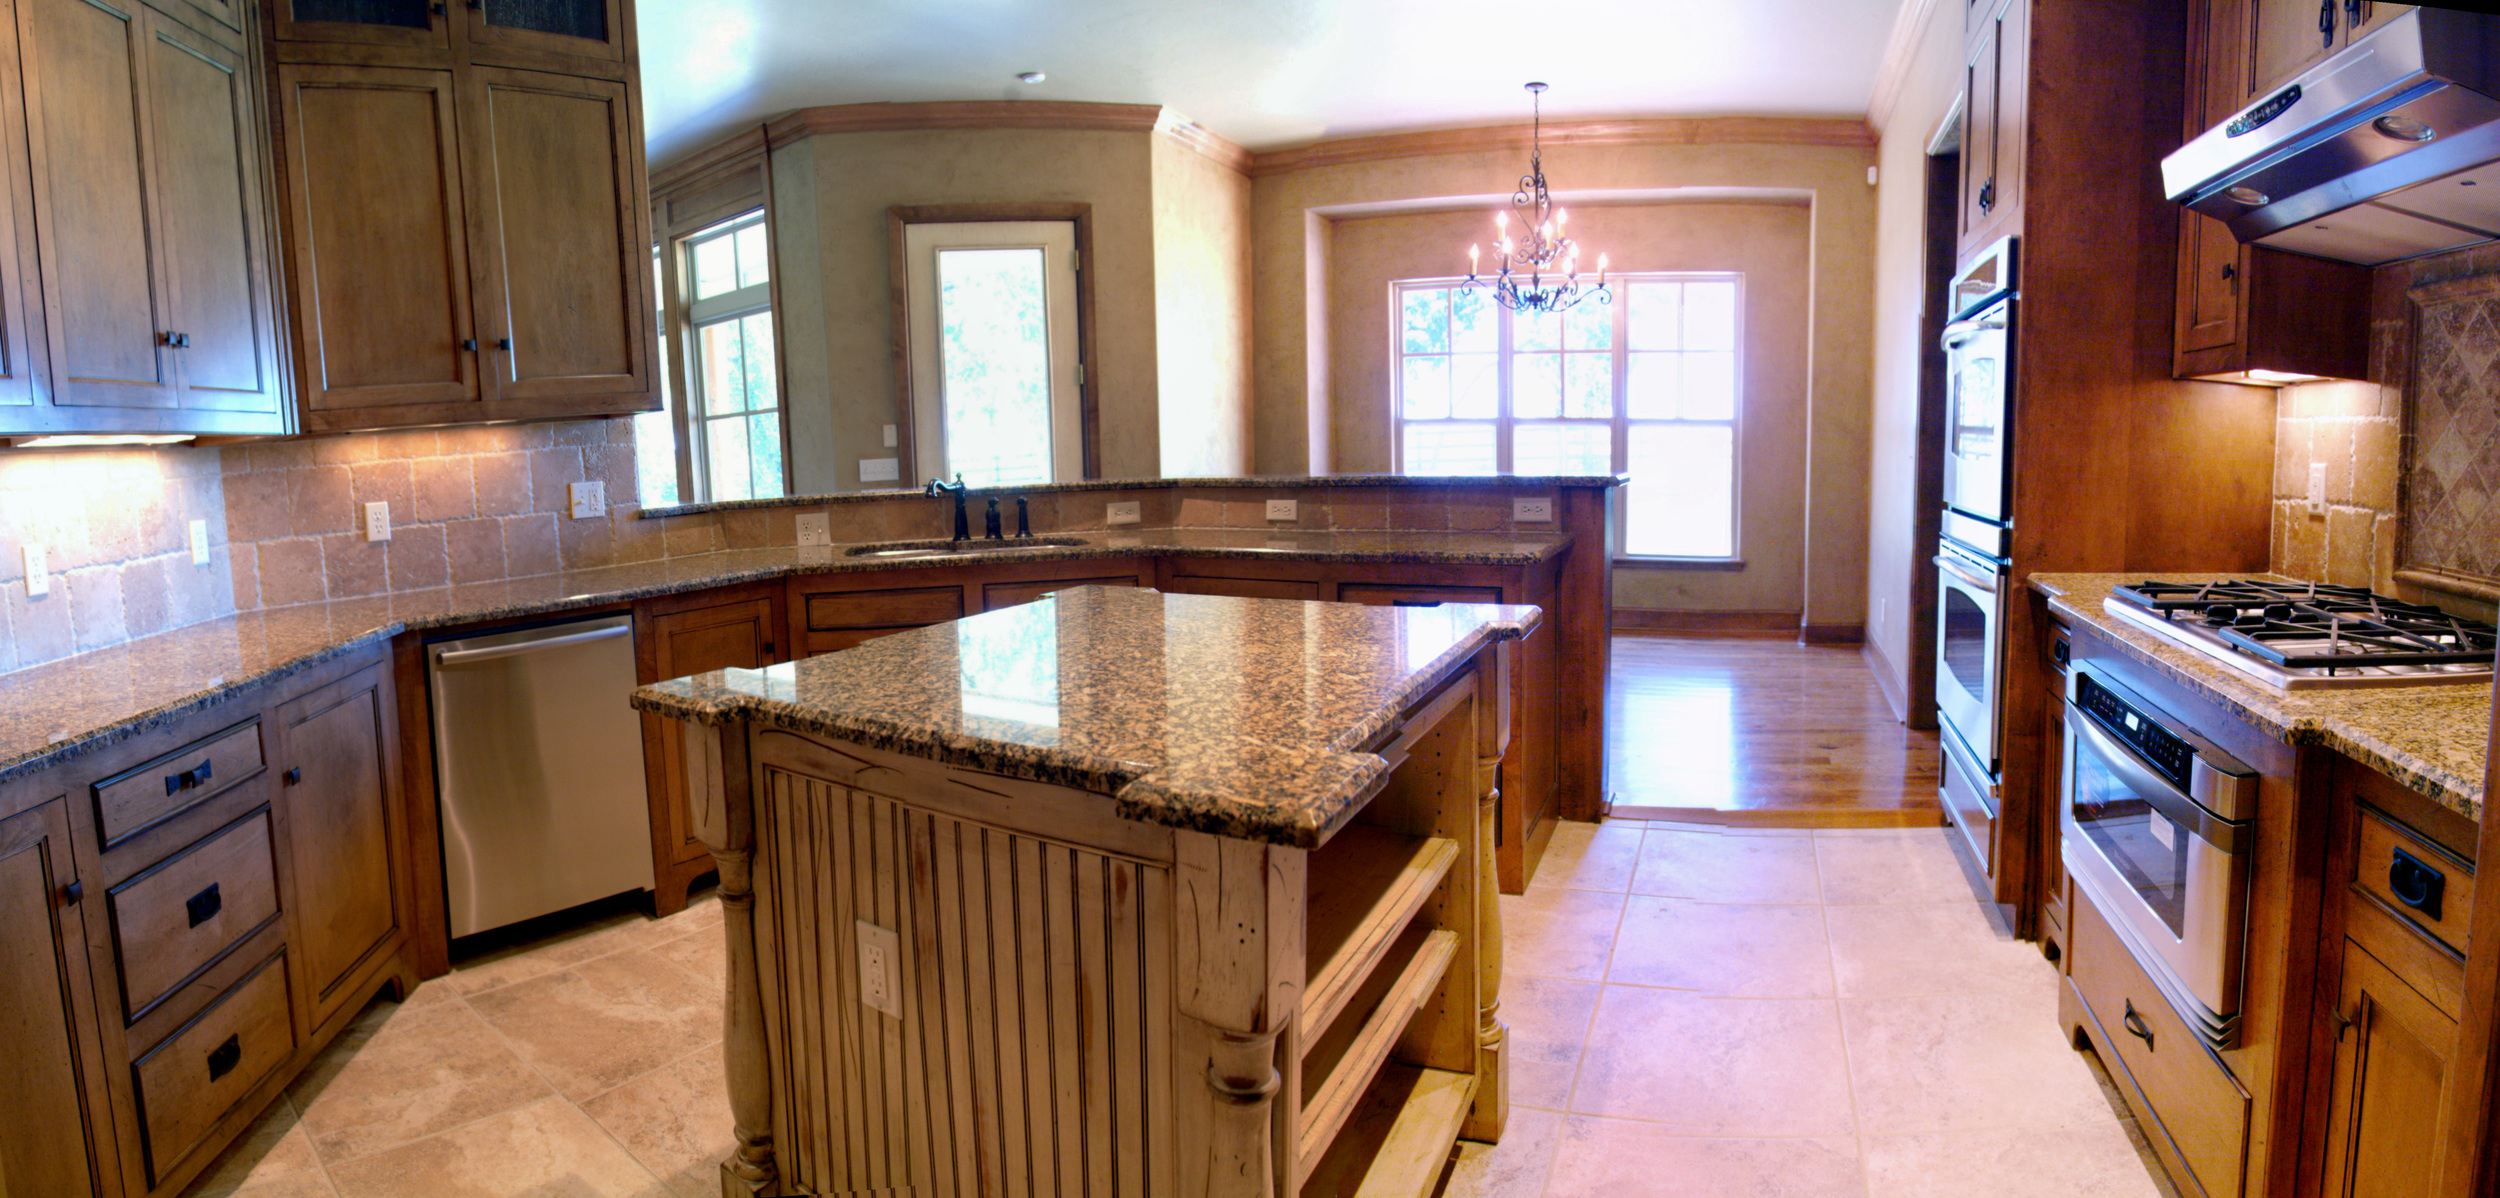 Panorama - kitchen 2.JPG